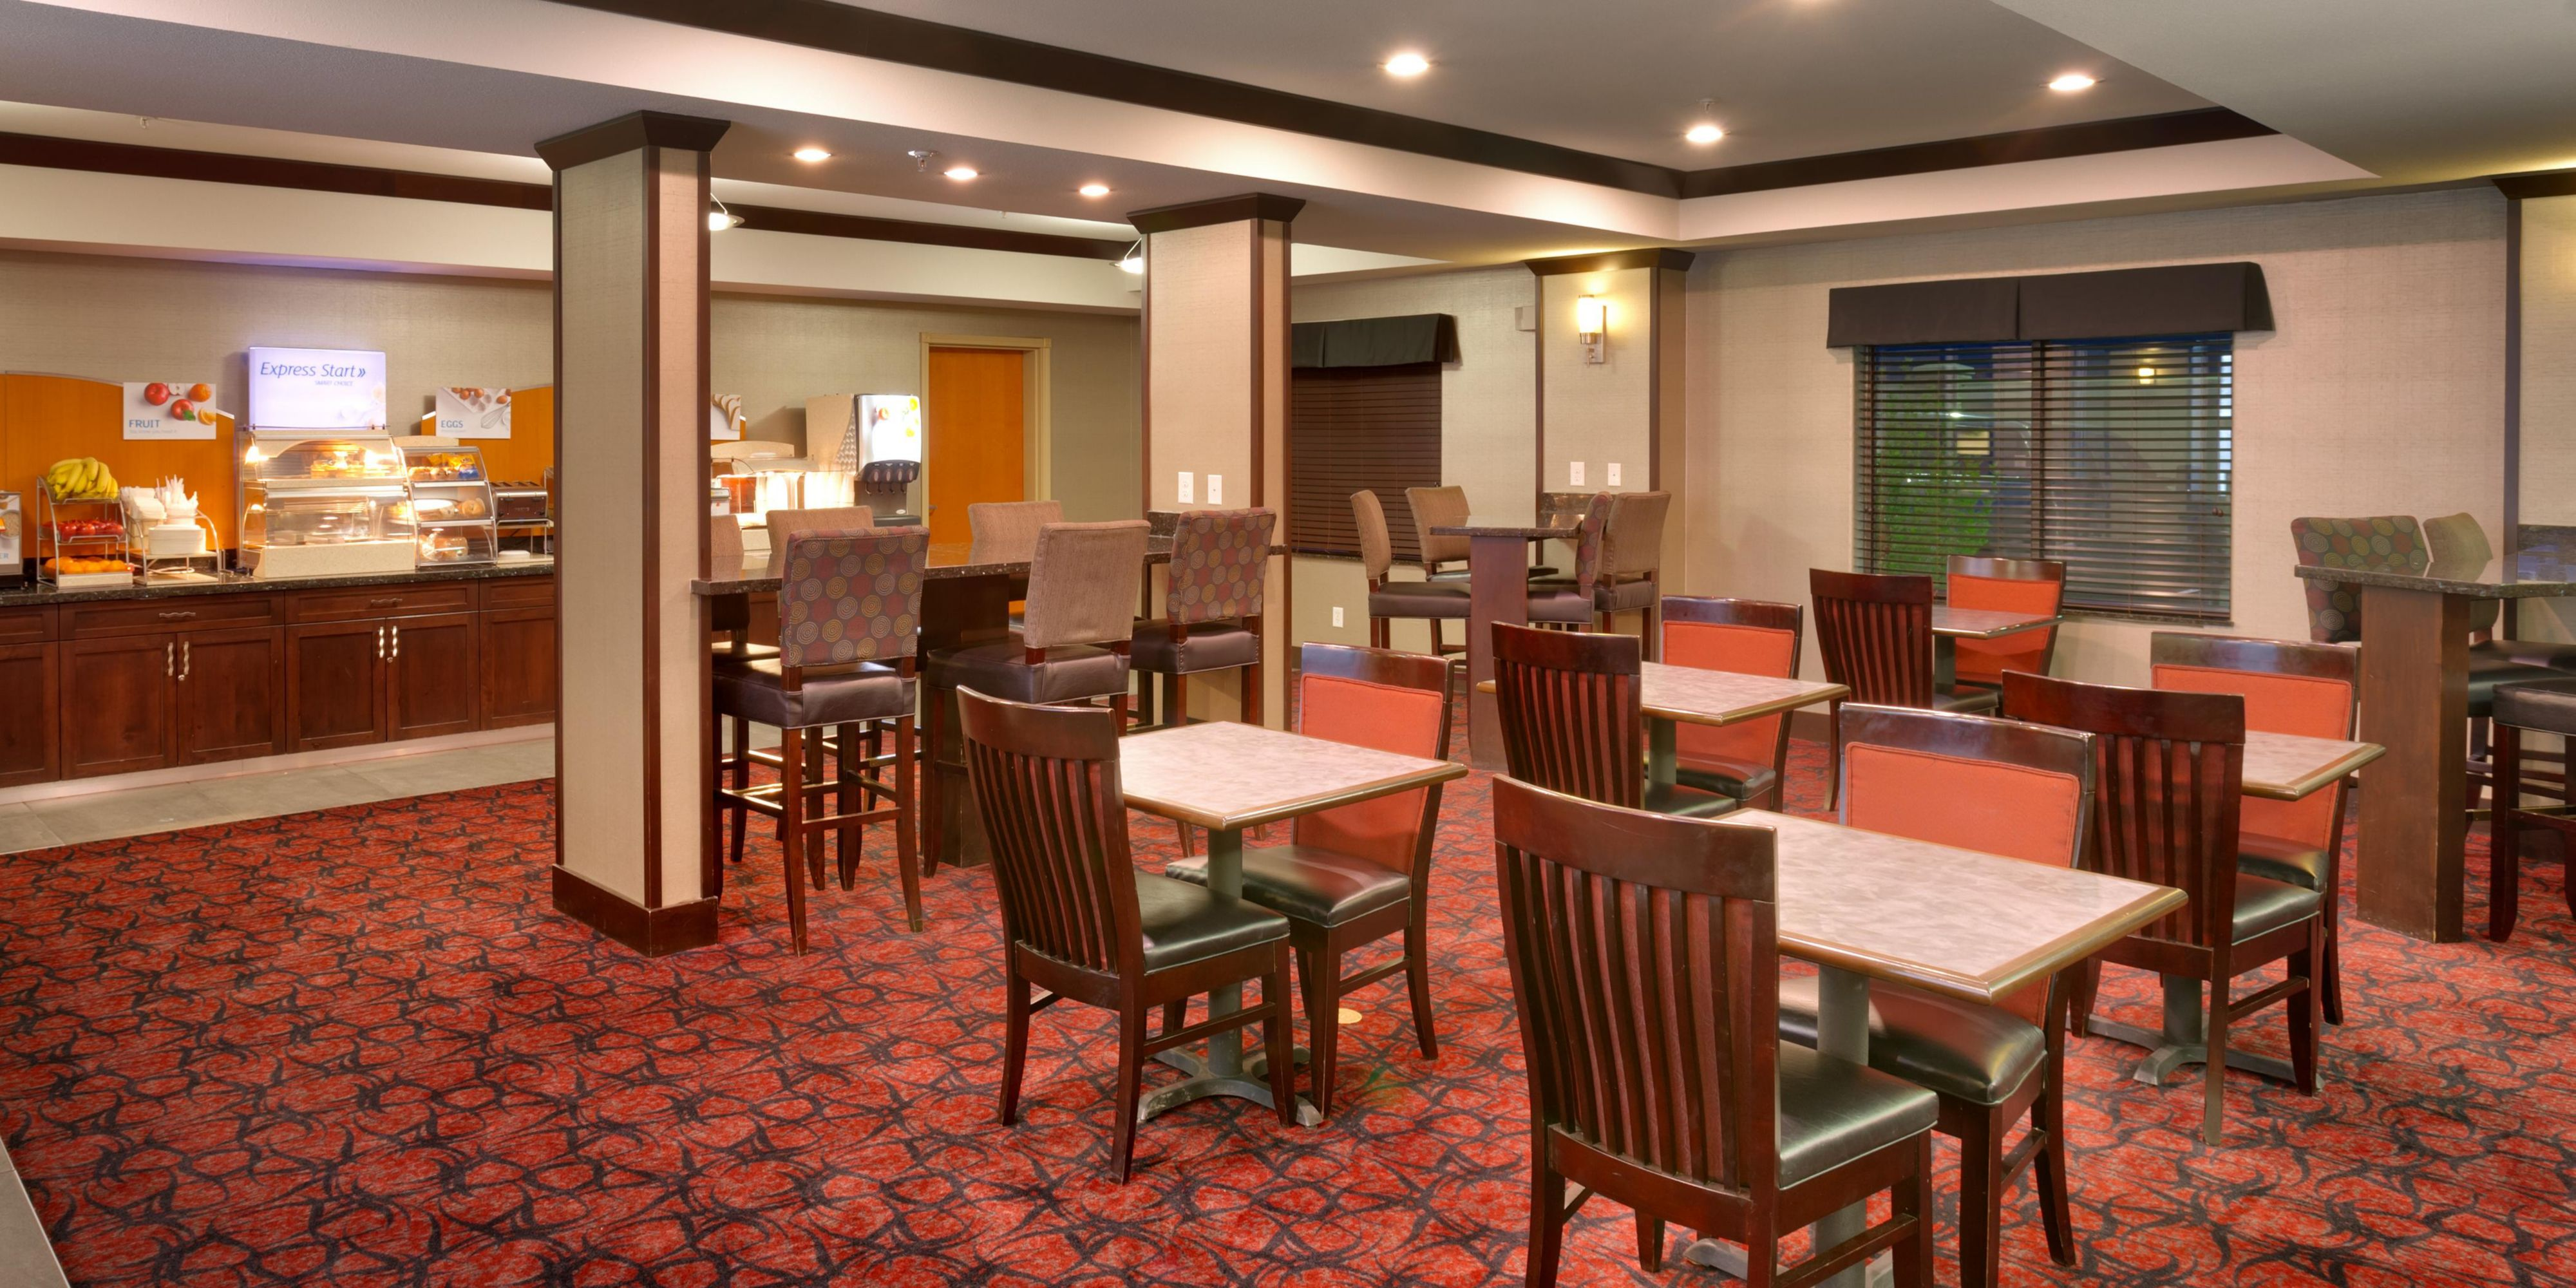 Holiday Inn Express Suites Grand Junction Hotel by IHG